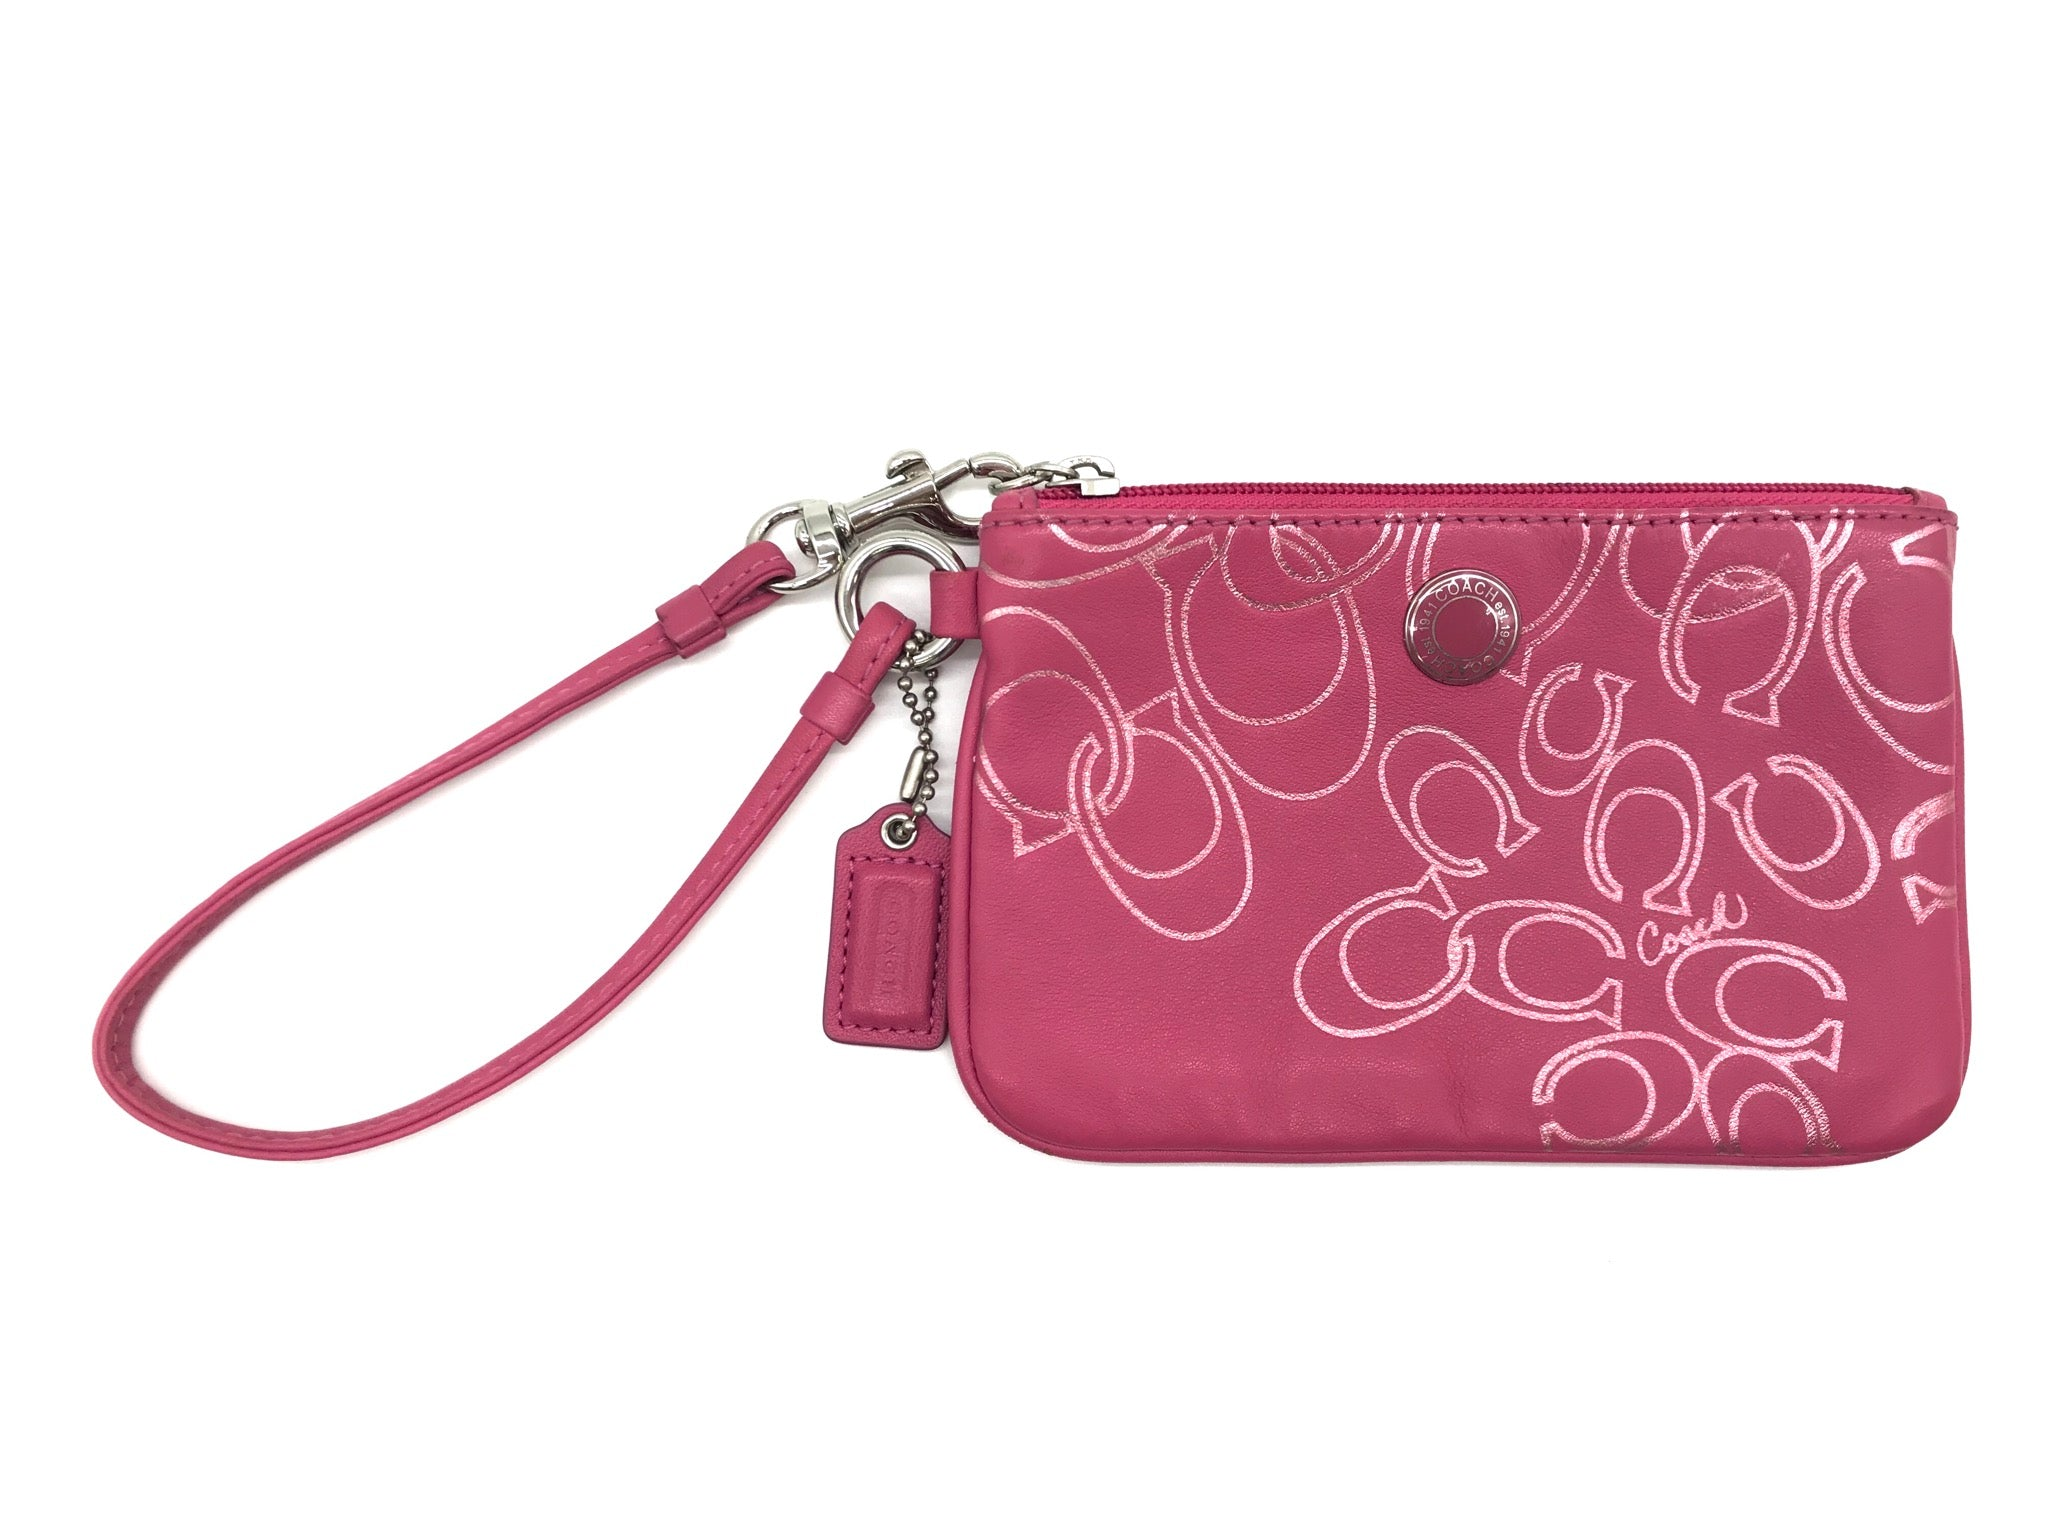 Primary Photo - BRAND: COACH<BR>STYLE: COIN PURSE <BR>COLOR: PINK <BR>SIZE: MEDIUM<BR>SKU: 262-26241-41615<BR>GENTLE WEAR AS IS <BR>DESIGNER BRAND - FINAL SALE